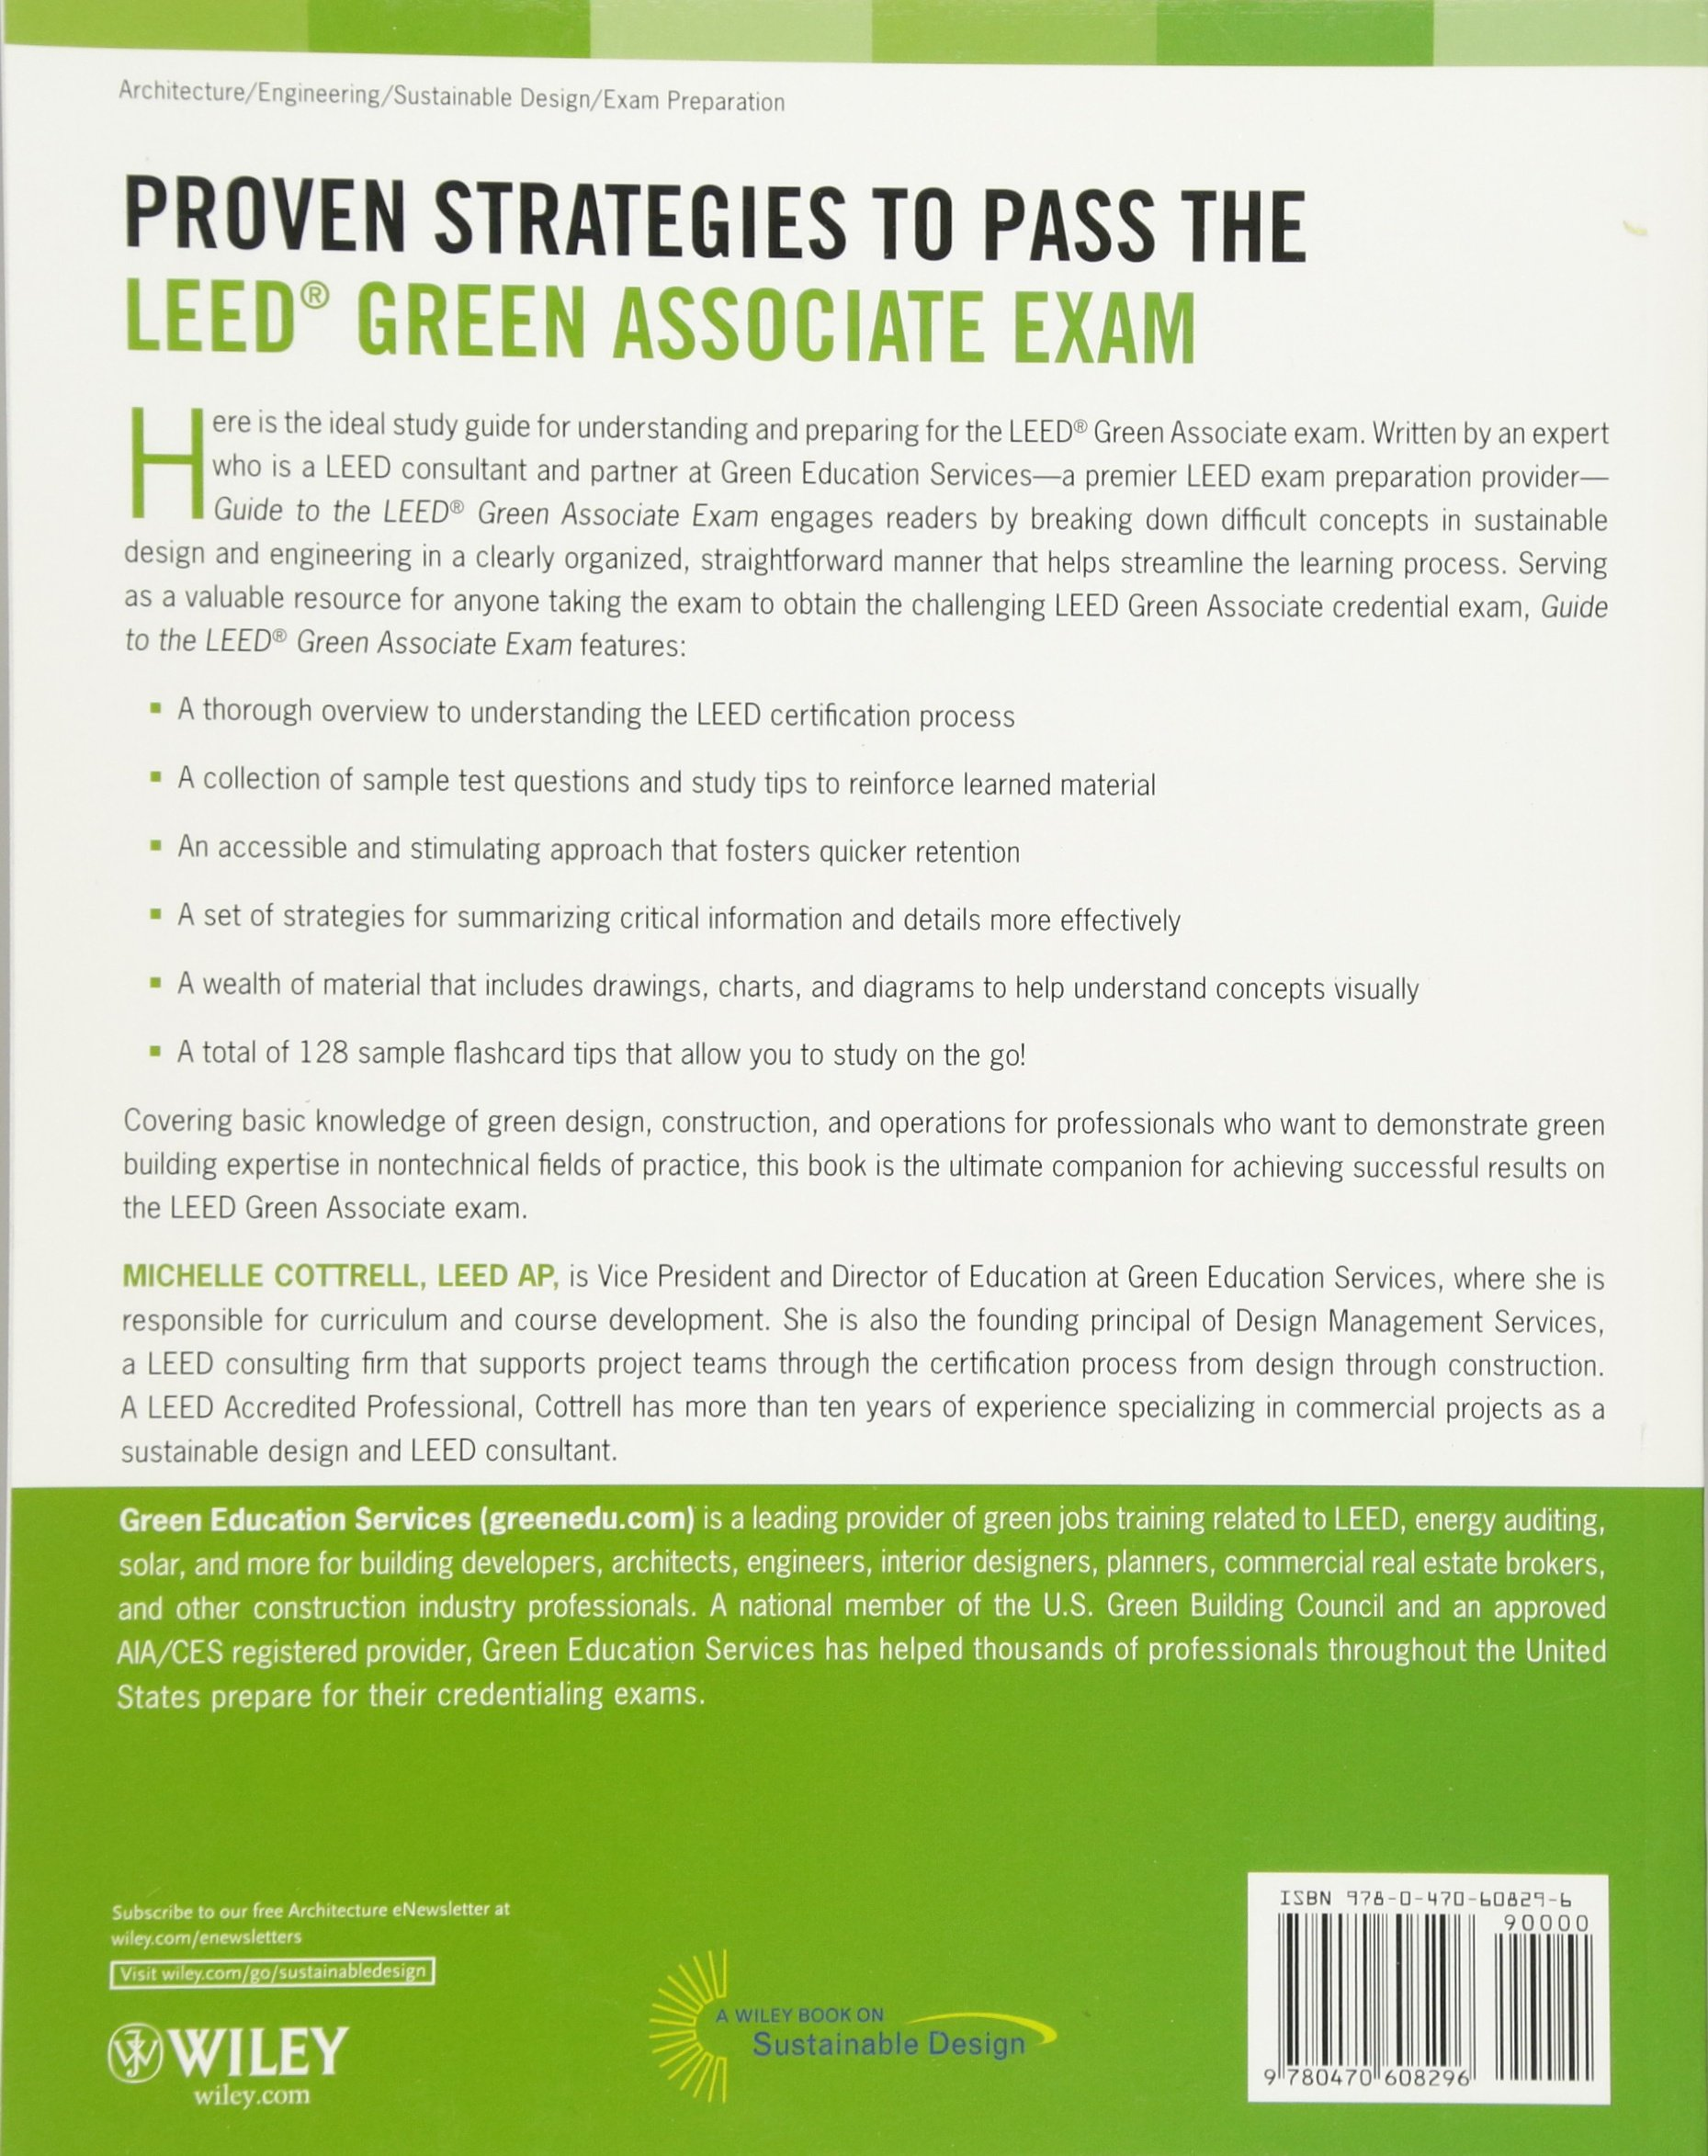 Guide to the leed green associate exam michelle cottrell guide to the leed green associate exam michelle cottrell 9780470608296 books amazon xflitez Images